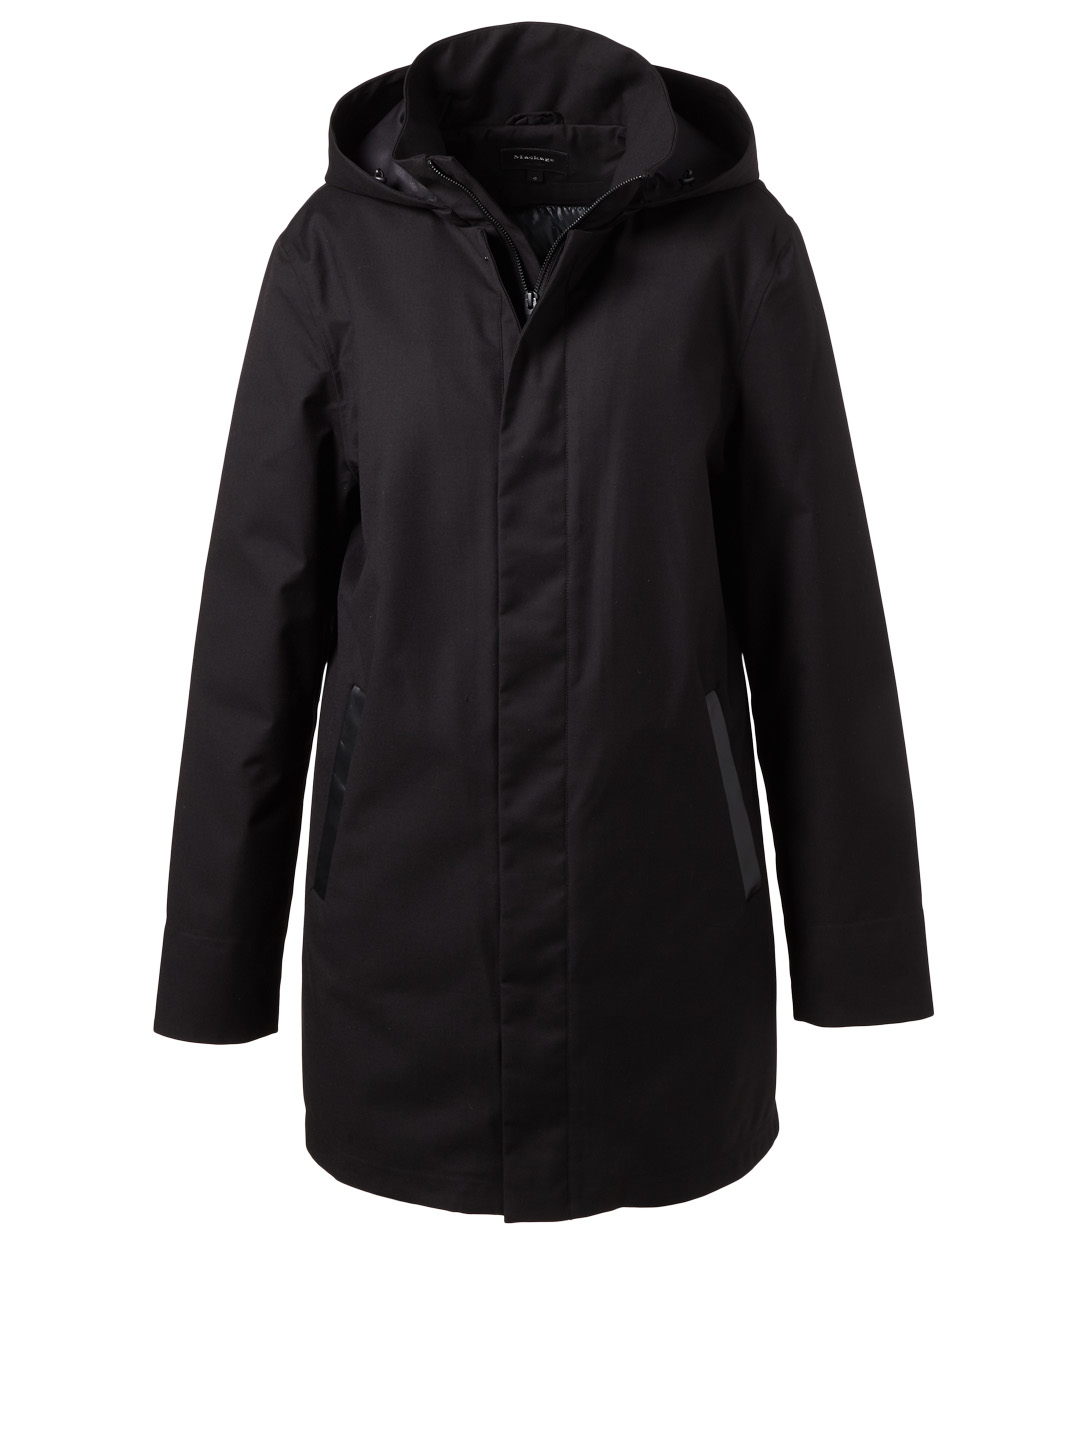 MACKAGE Thorin-Z Hybrid Down Coat Men's Black